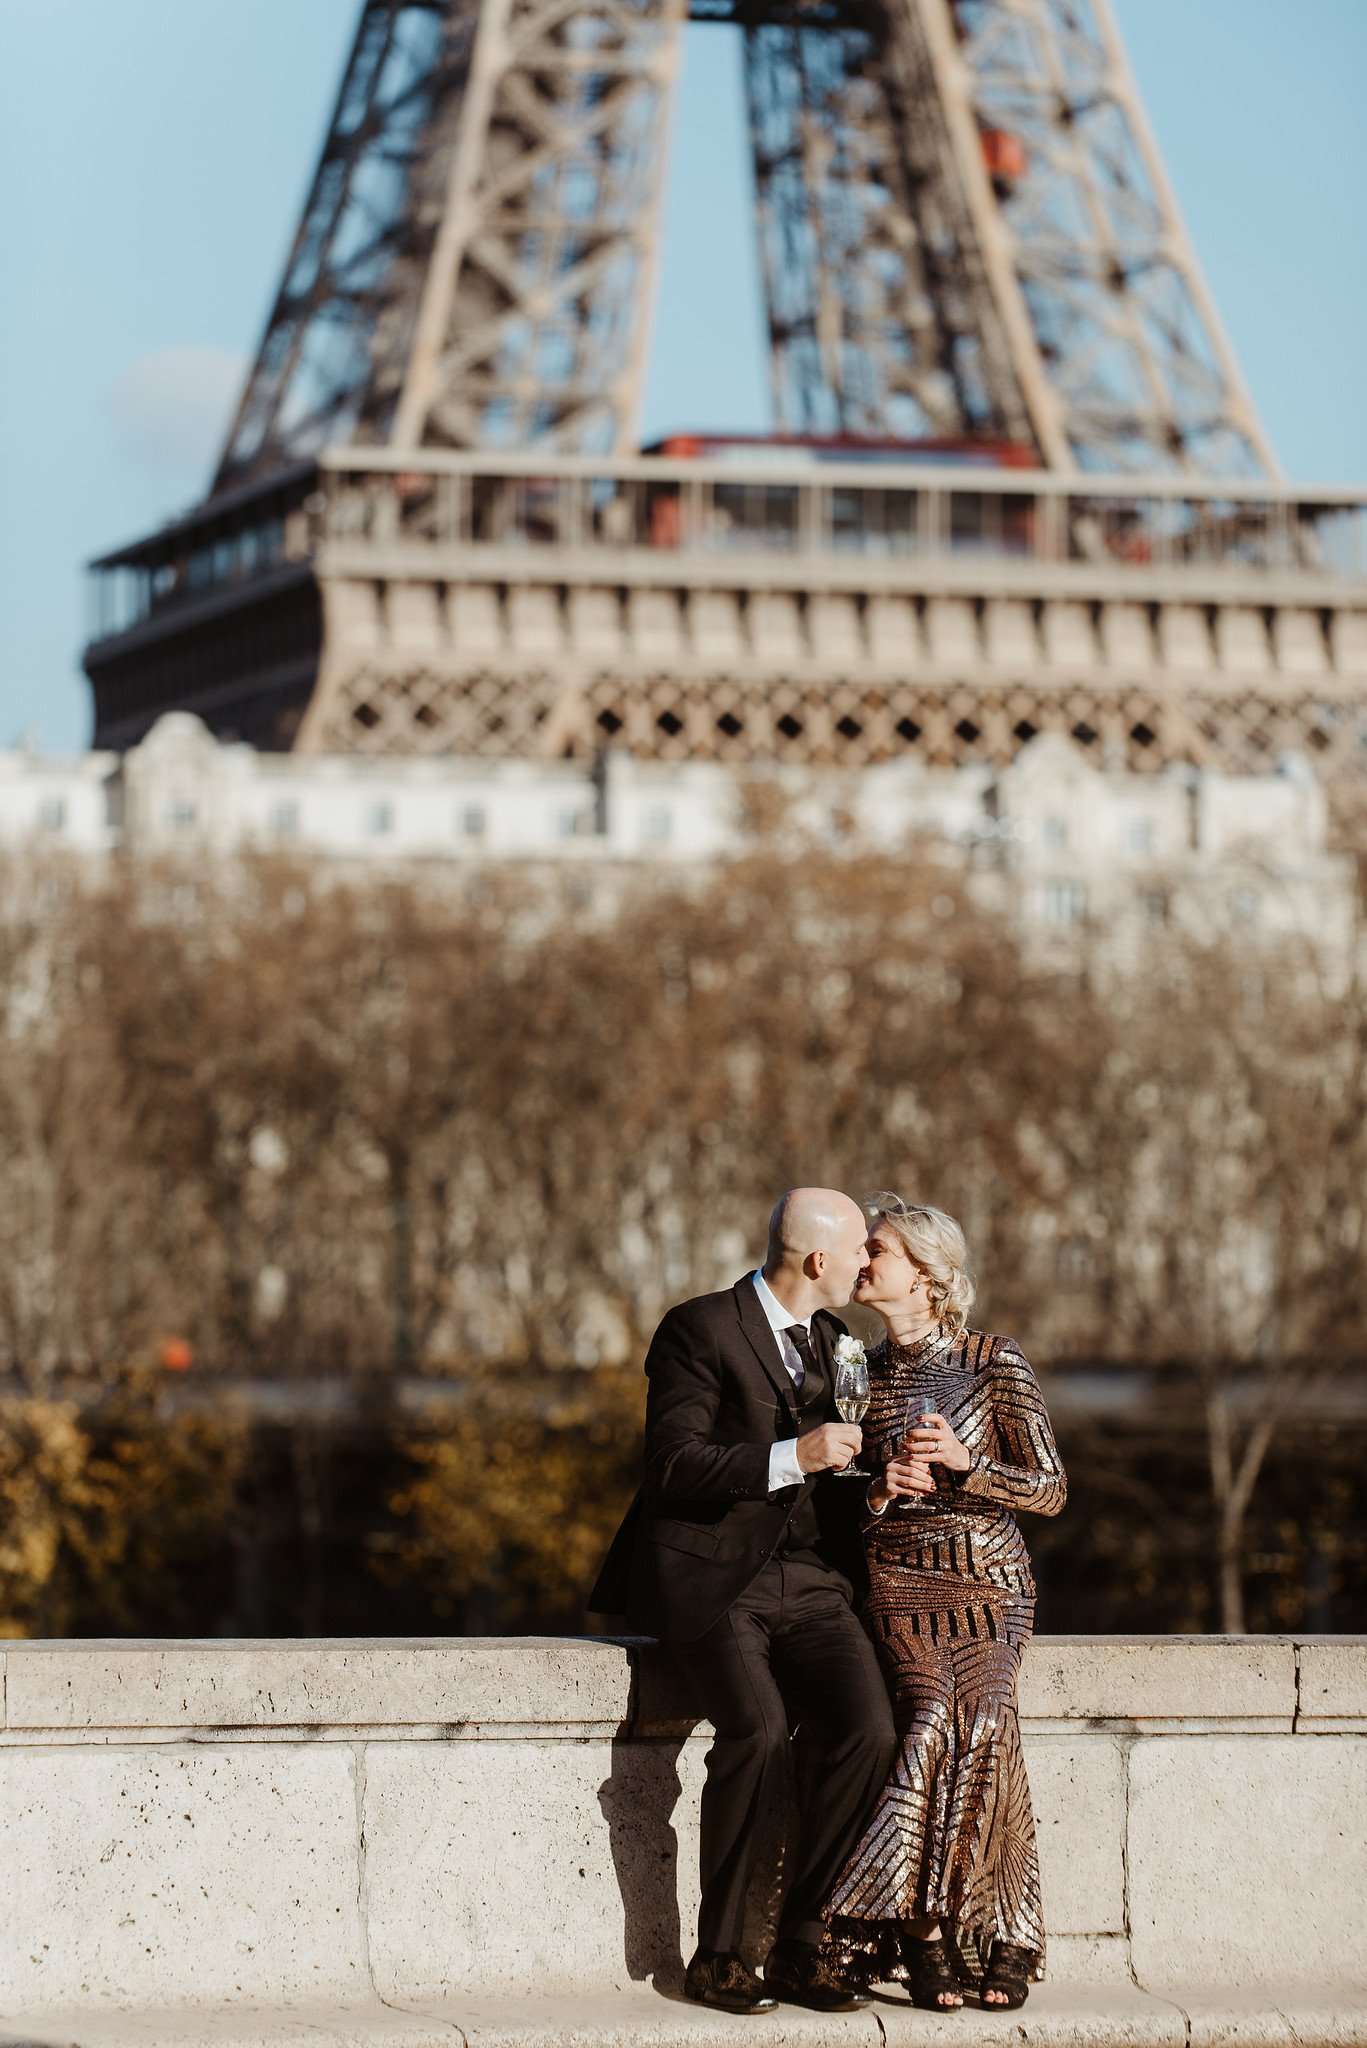 Eiffel Tower Renewal of Vows